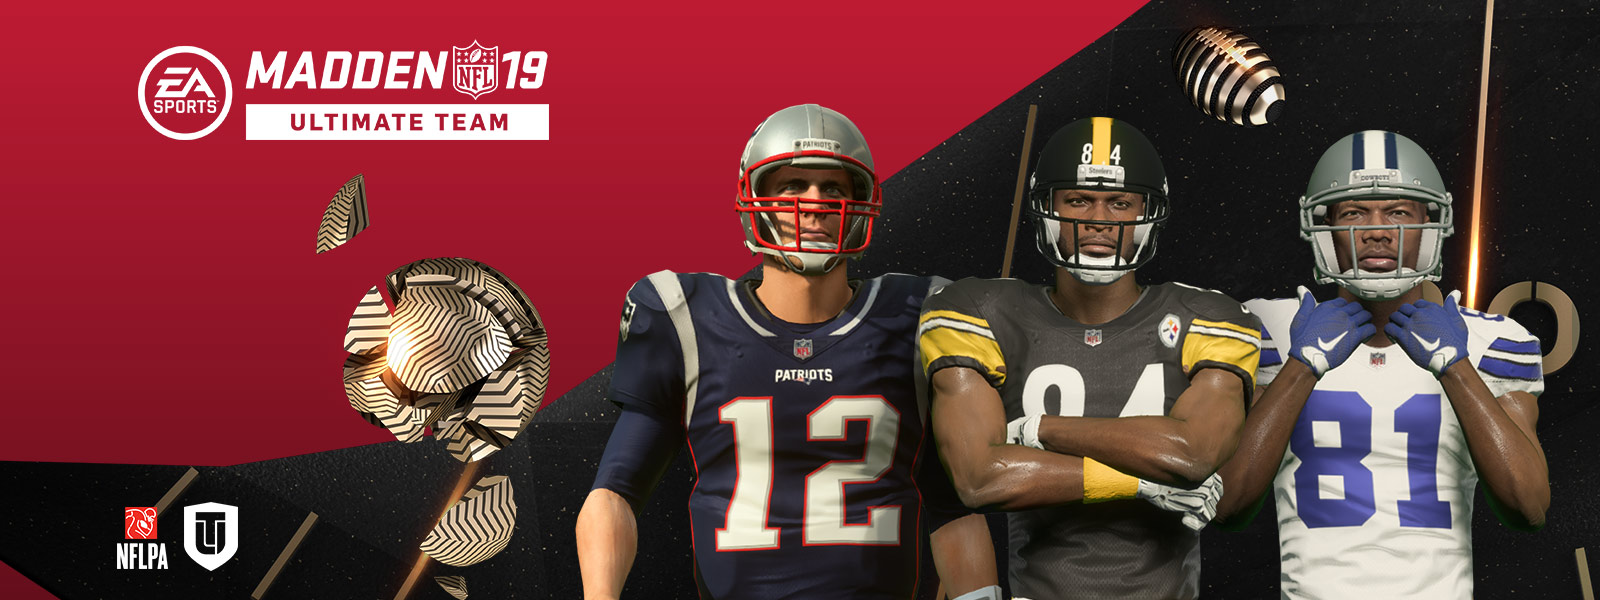 Madden NFL 19 Ultimate Team, vue de face de Tom Brady, Antonio Brown et Terrell Owens